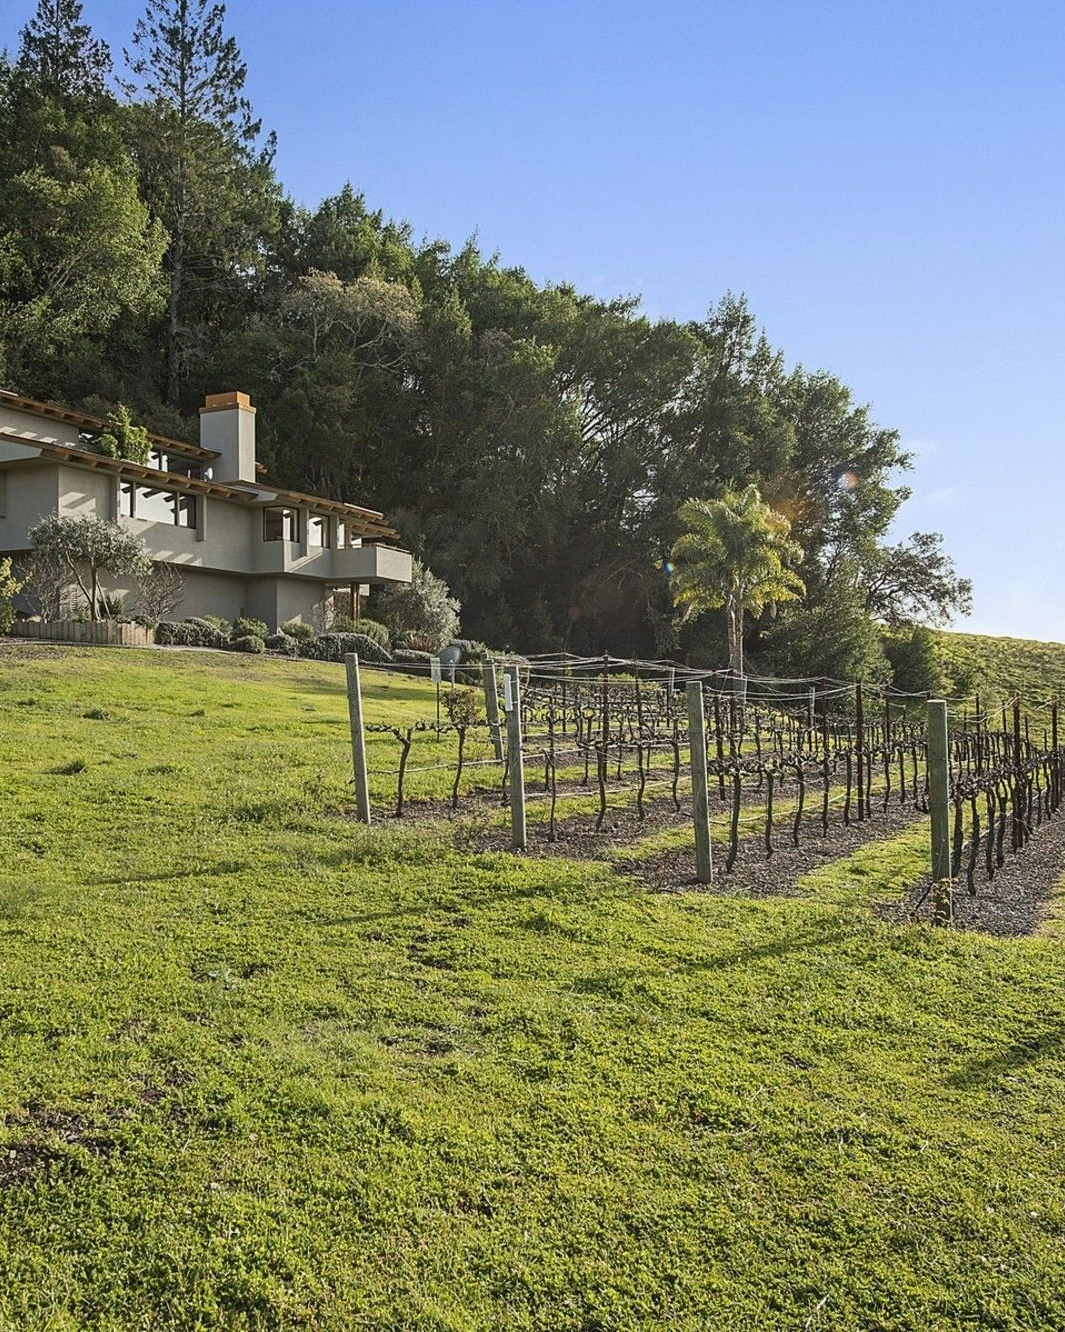 NEW EVENT II - Tuesday, August 28th at 6:30pmCristom Vineyards began a quarter of a century ago as a collaboration between an engineer and a biochemist who each possessed a deep-rooted respect for the land, the natural winemaking process, and Pinot Noir. 25 years later, second-generation winegrower and owner Tom Gerrie leads winemaker Steve Doerner and our tenured viticulture team in tending our Estate vineyards, and producing elegant, dynamic wines, recognizable by our hallmark style of whole-cluster fermentation by native yeasts.Read More